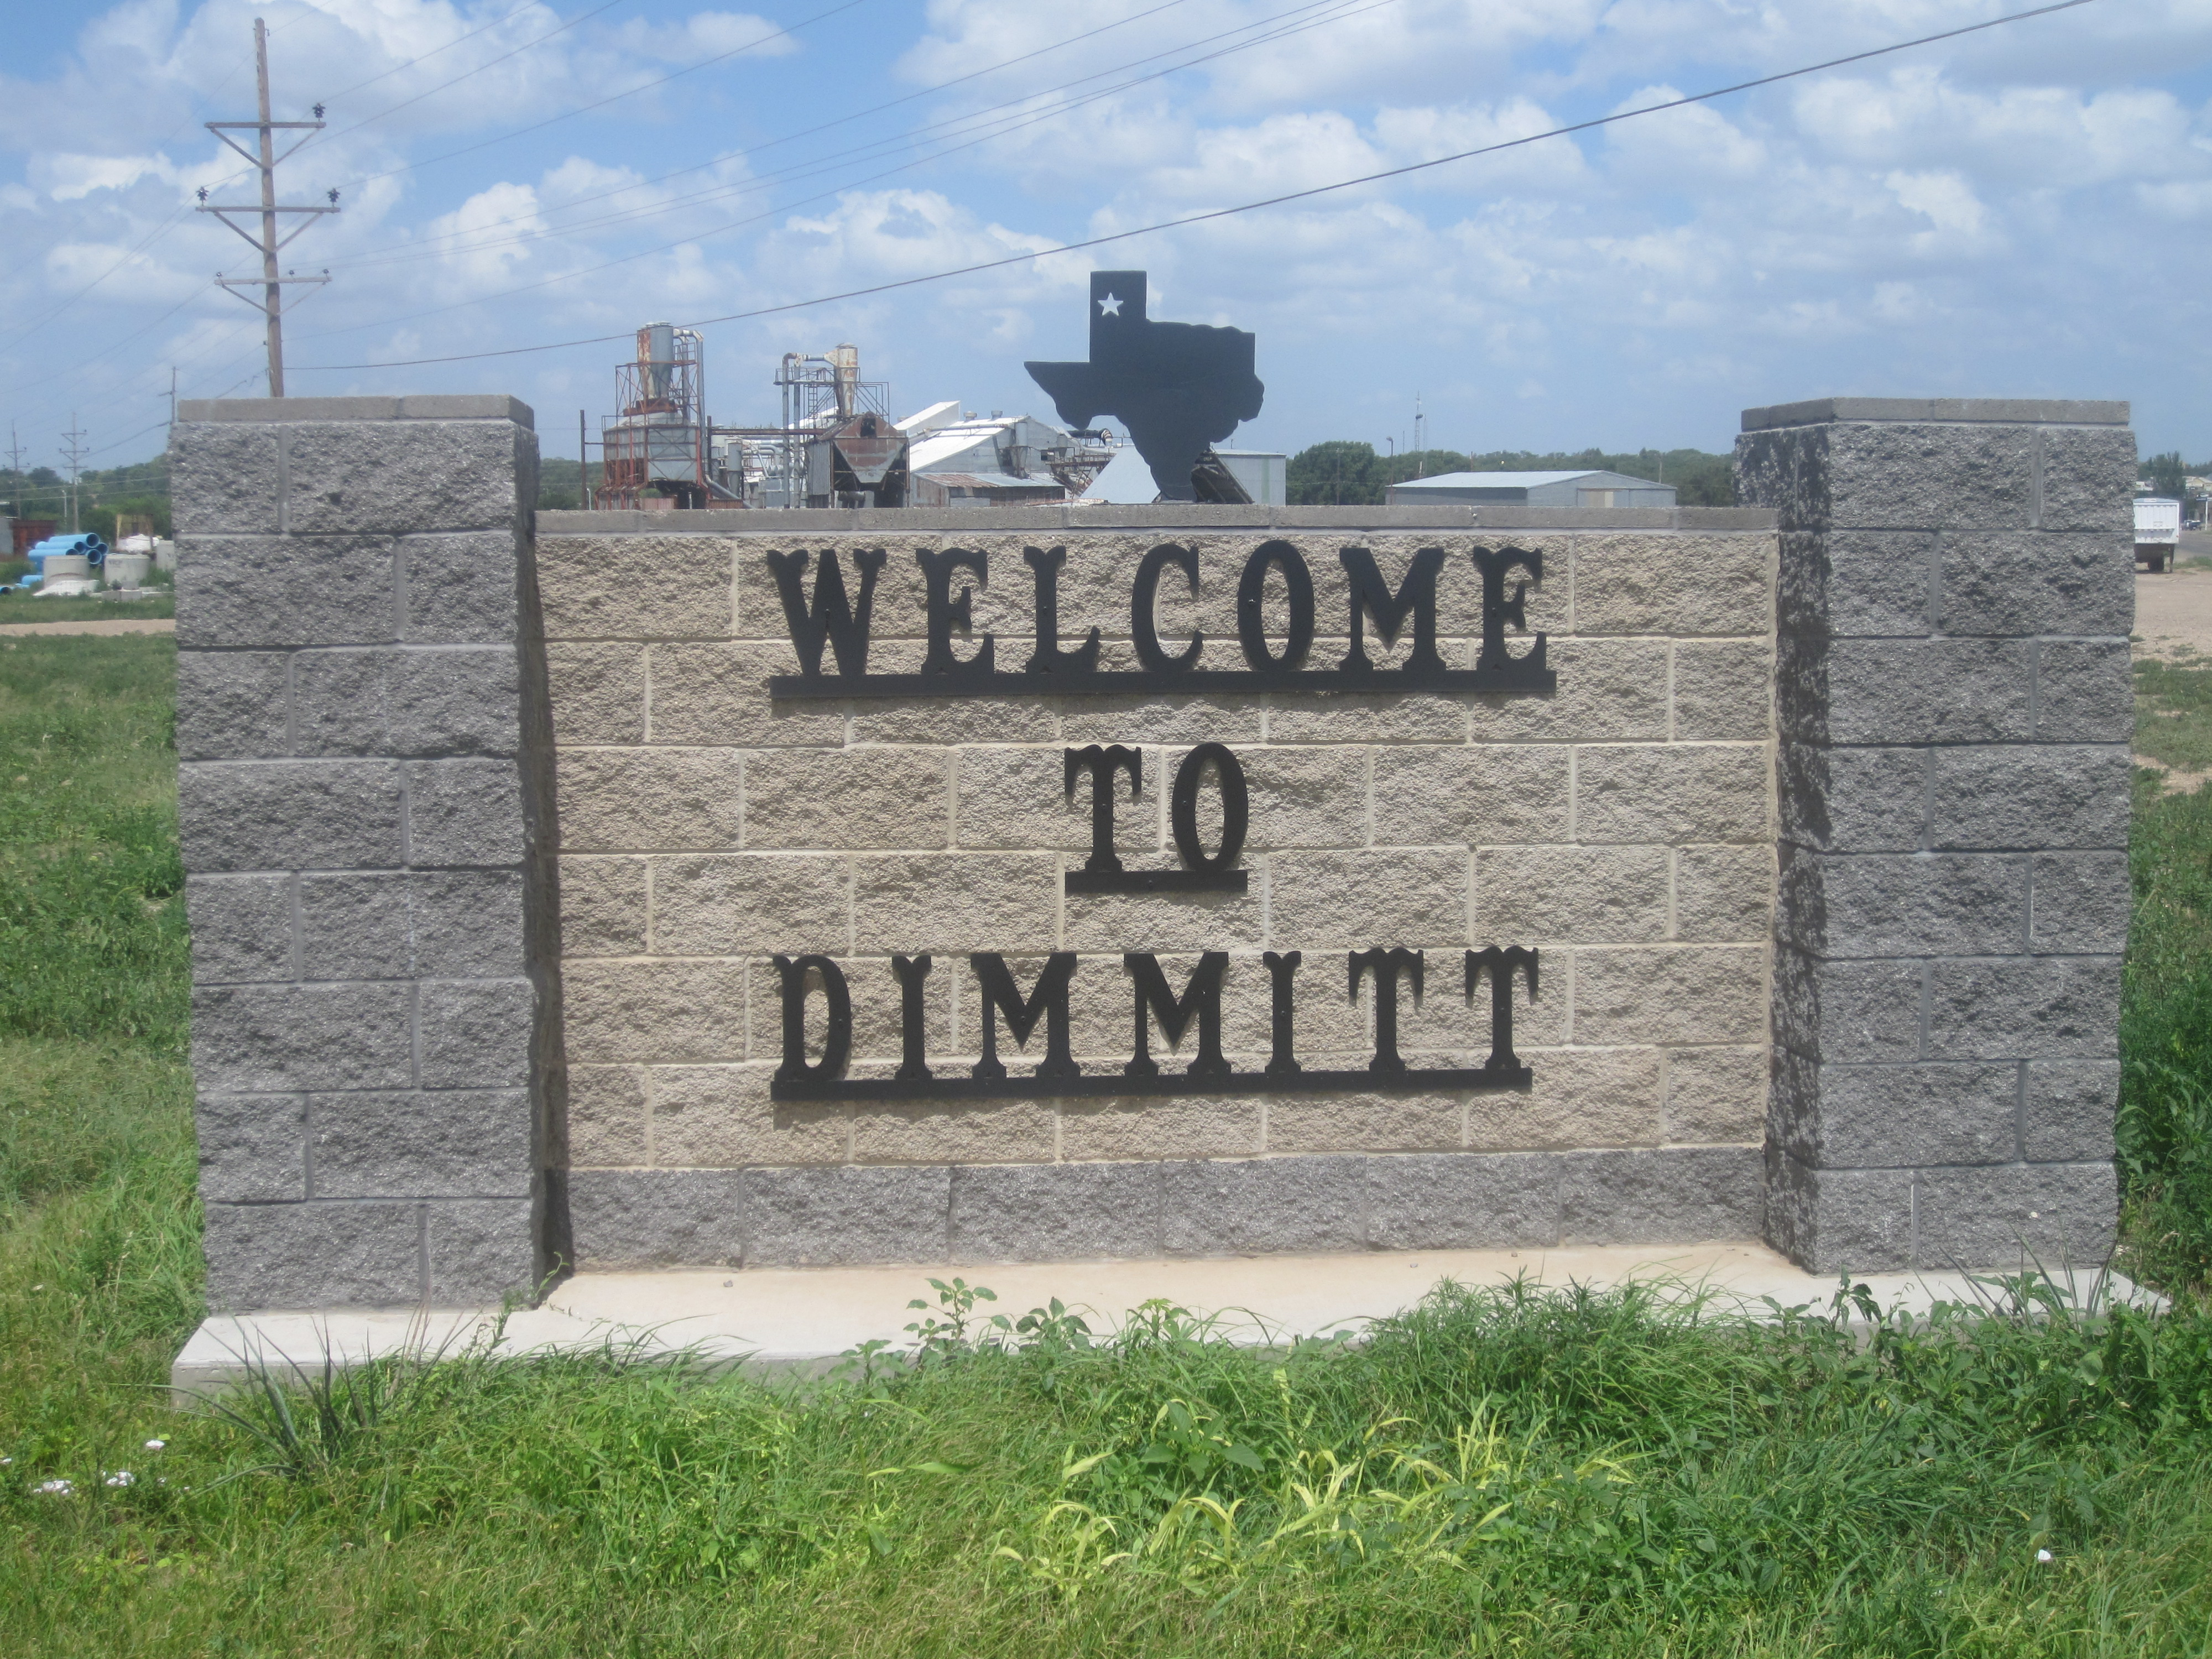 dimmitt online dating This may contain online profiles, dating websites, forgotten social media accounts, and other potentially embarrassing profiles  dimmitt ronald ivy.